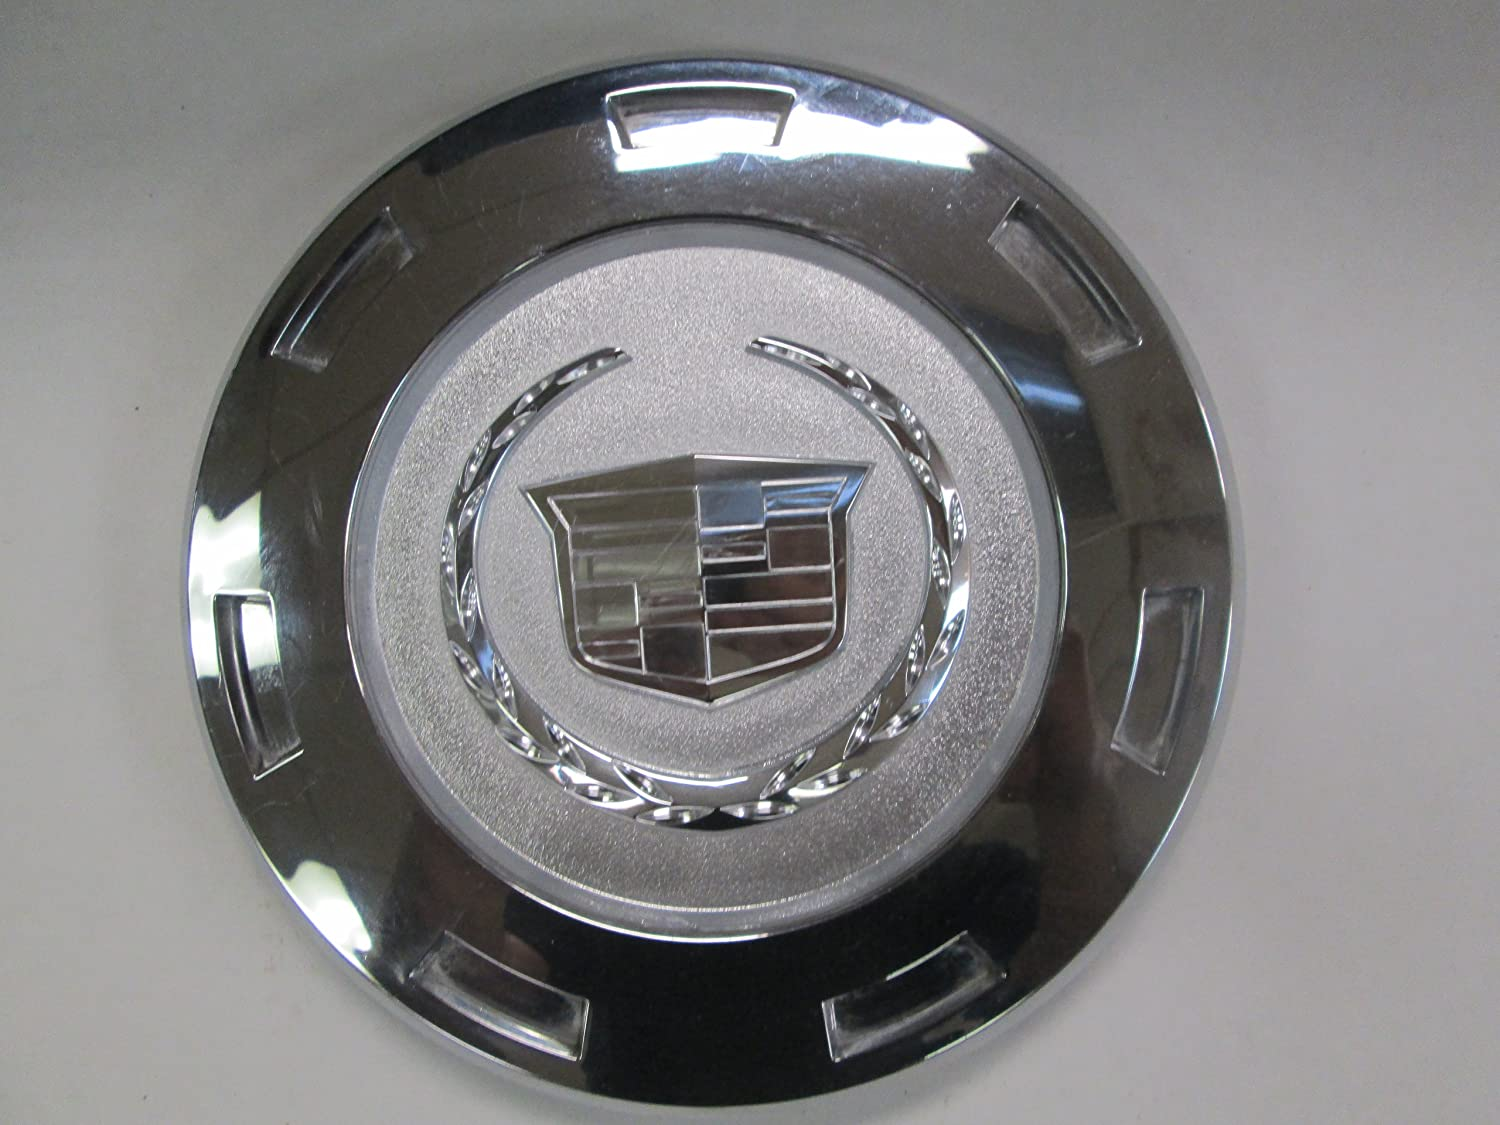 Factory Cadillac Escalade 22 Colored Wreath And Crest Center Caps 1 Single Cap